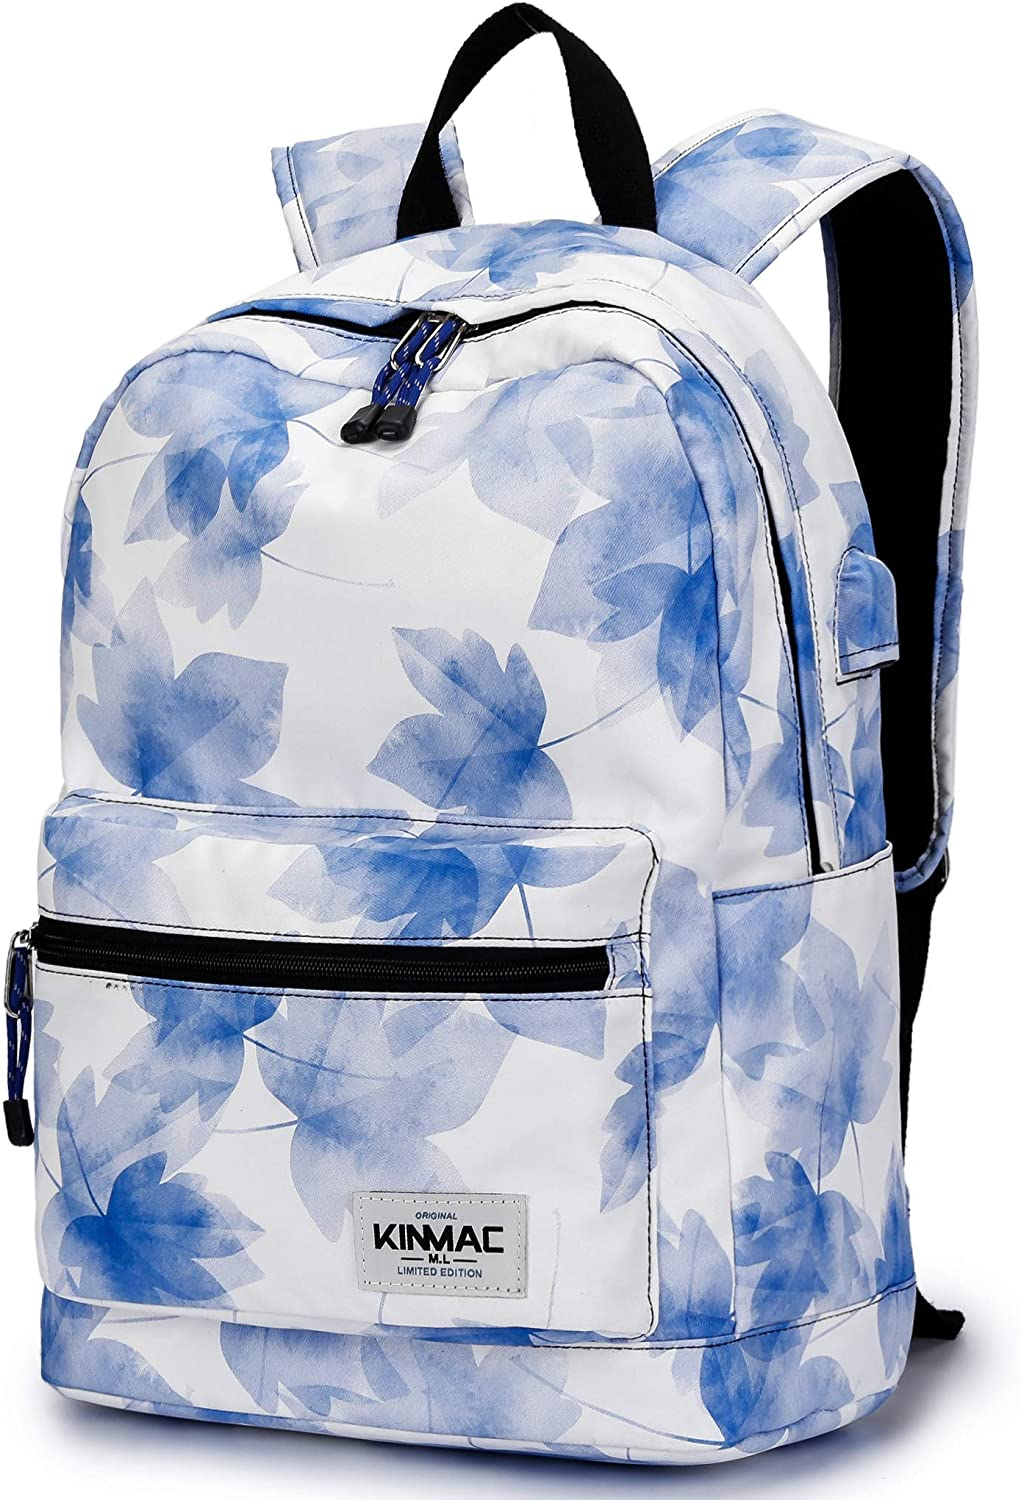 Kinmac New Design Waterproof Laptop Travel Outdoor Backpack with USB Charging Port for 13 inch 14 inch and 15.6 inch Laptop (Blue Maple)